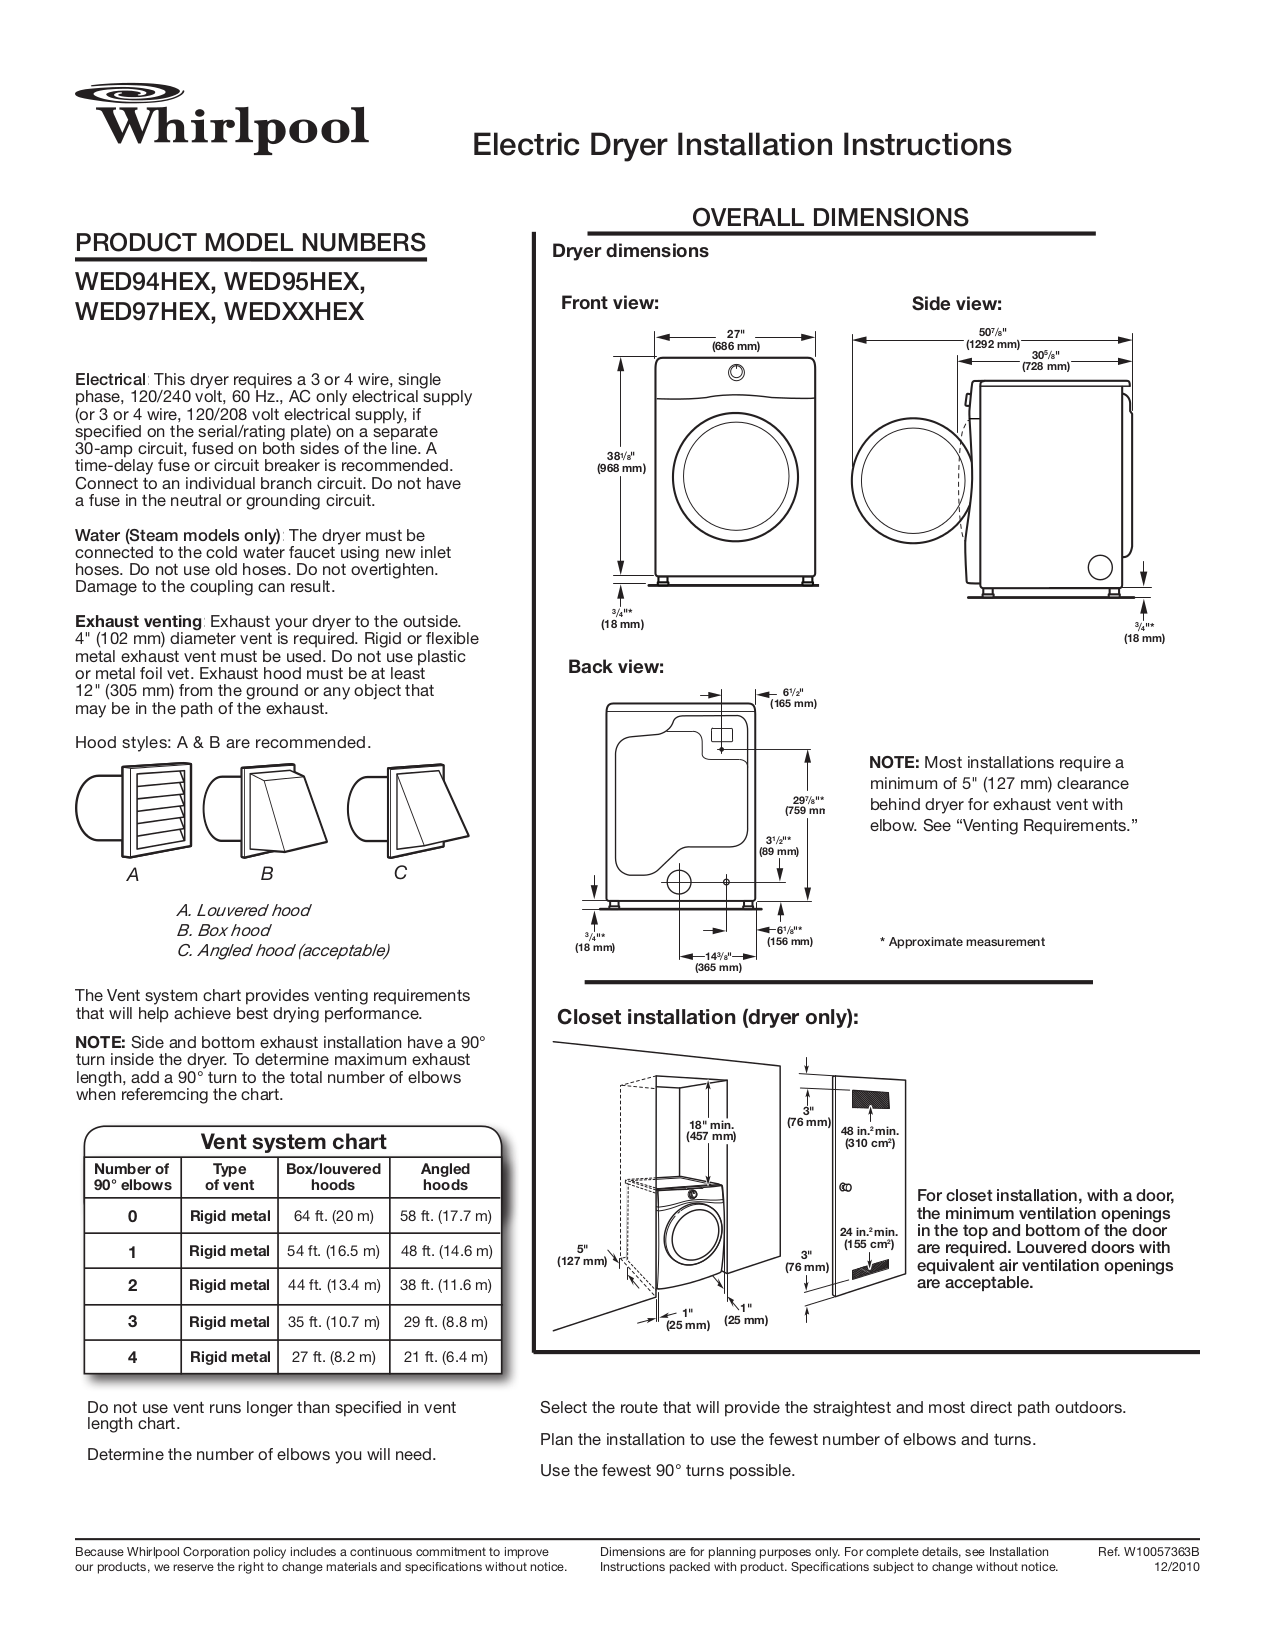 Whirlpool dryer wiring diagram manual | wiring diagram.